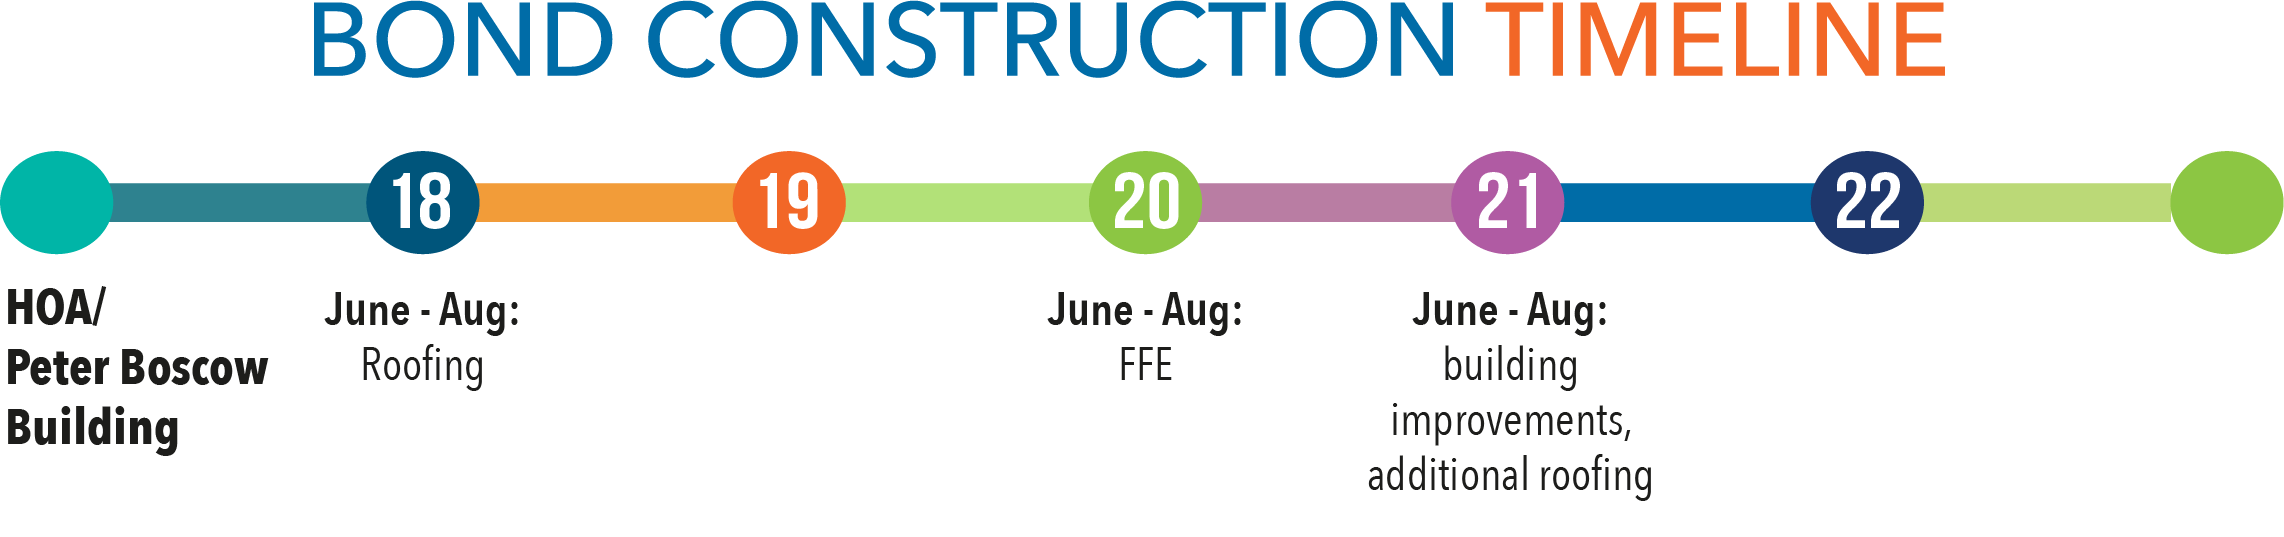 construction timeline for HOA/Boscow